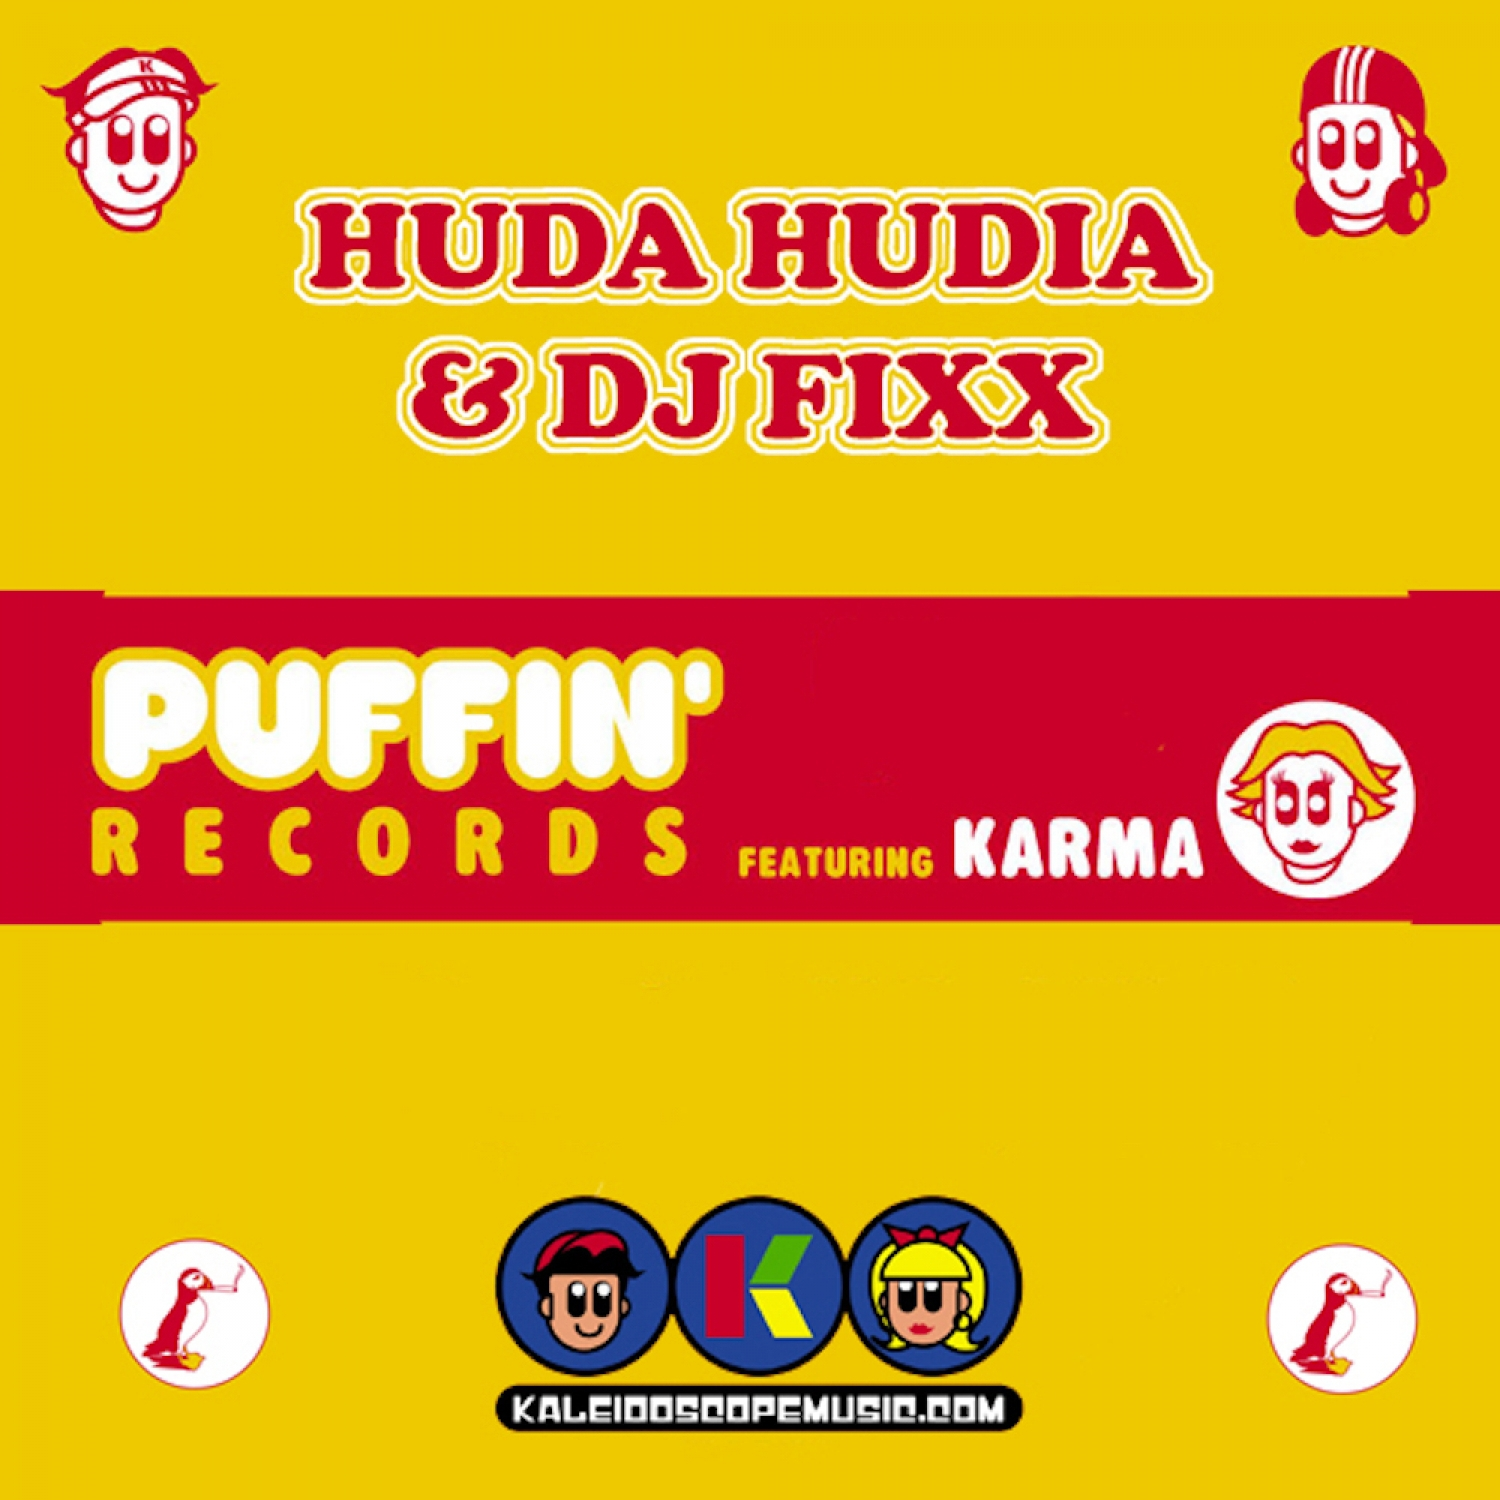 Huda Hudia & DJ Fixx - Alright (Original Mix)